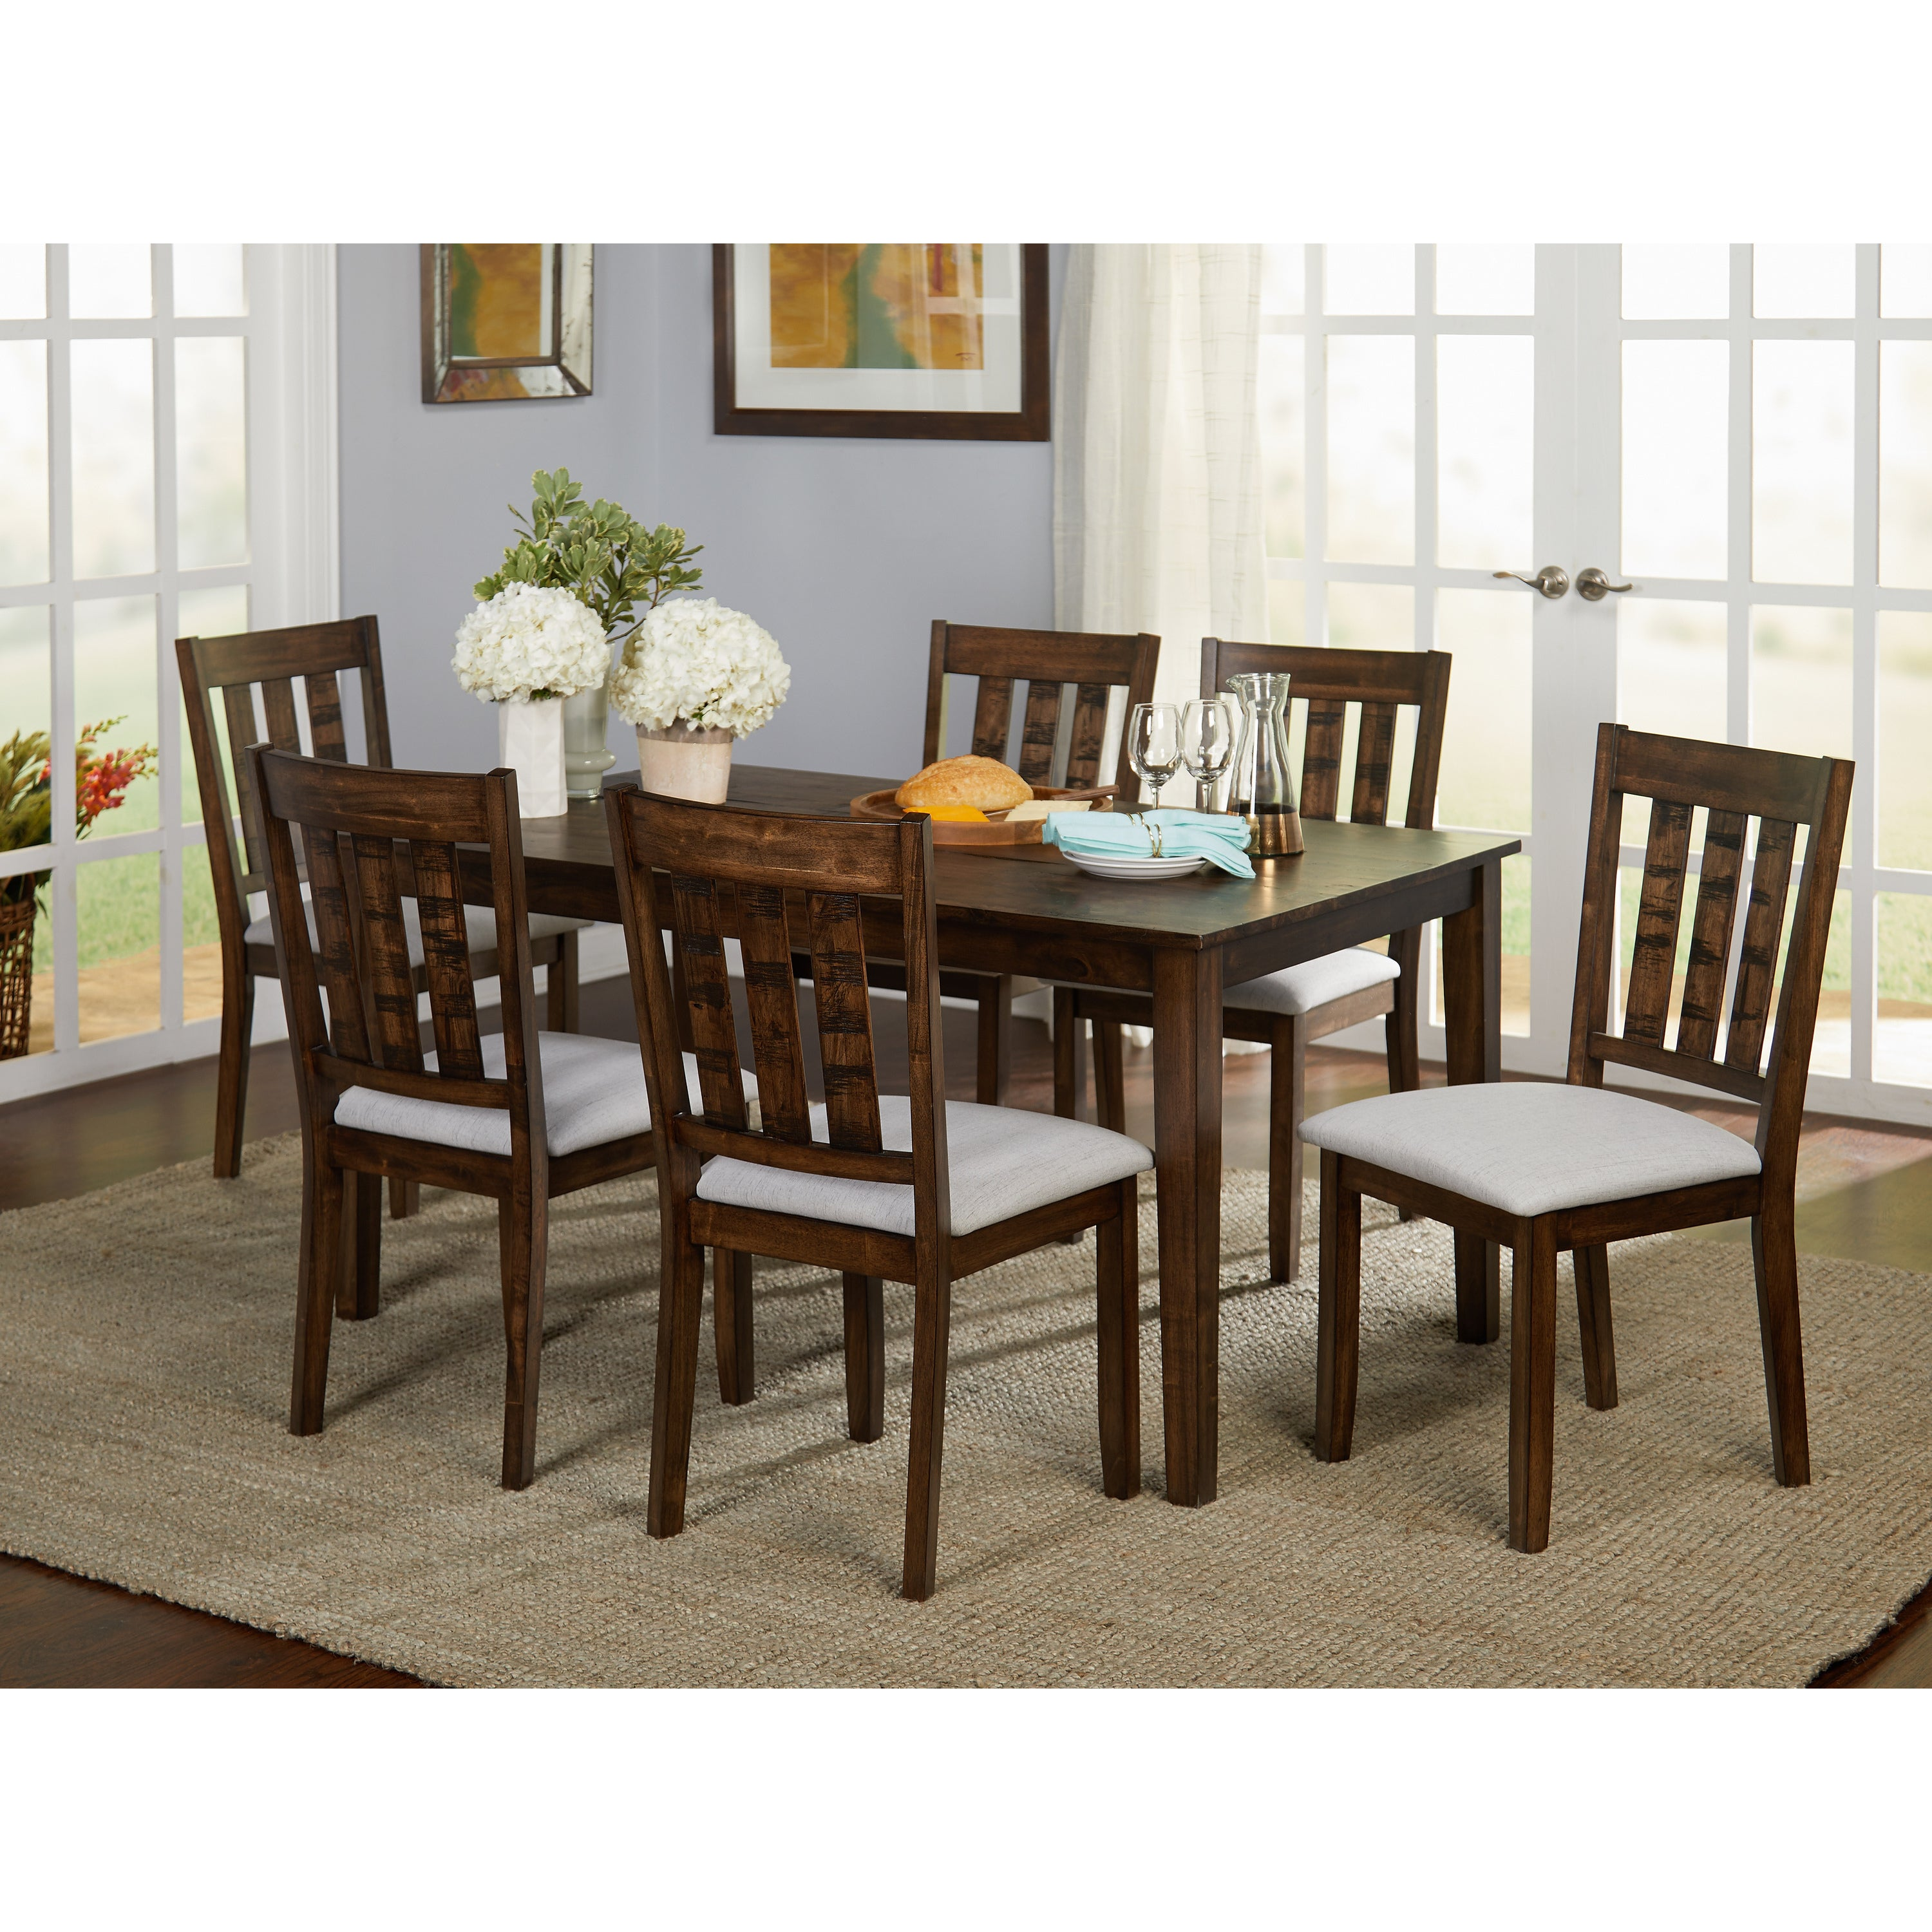 225 & Buy Kitchen \u0026 Dining Room Tables Online at Overstock | Our Best ...